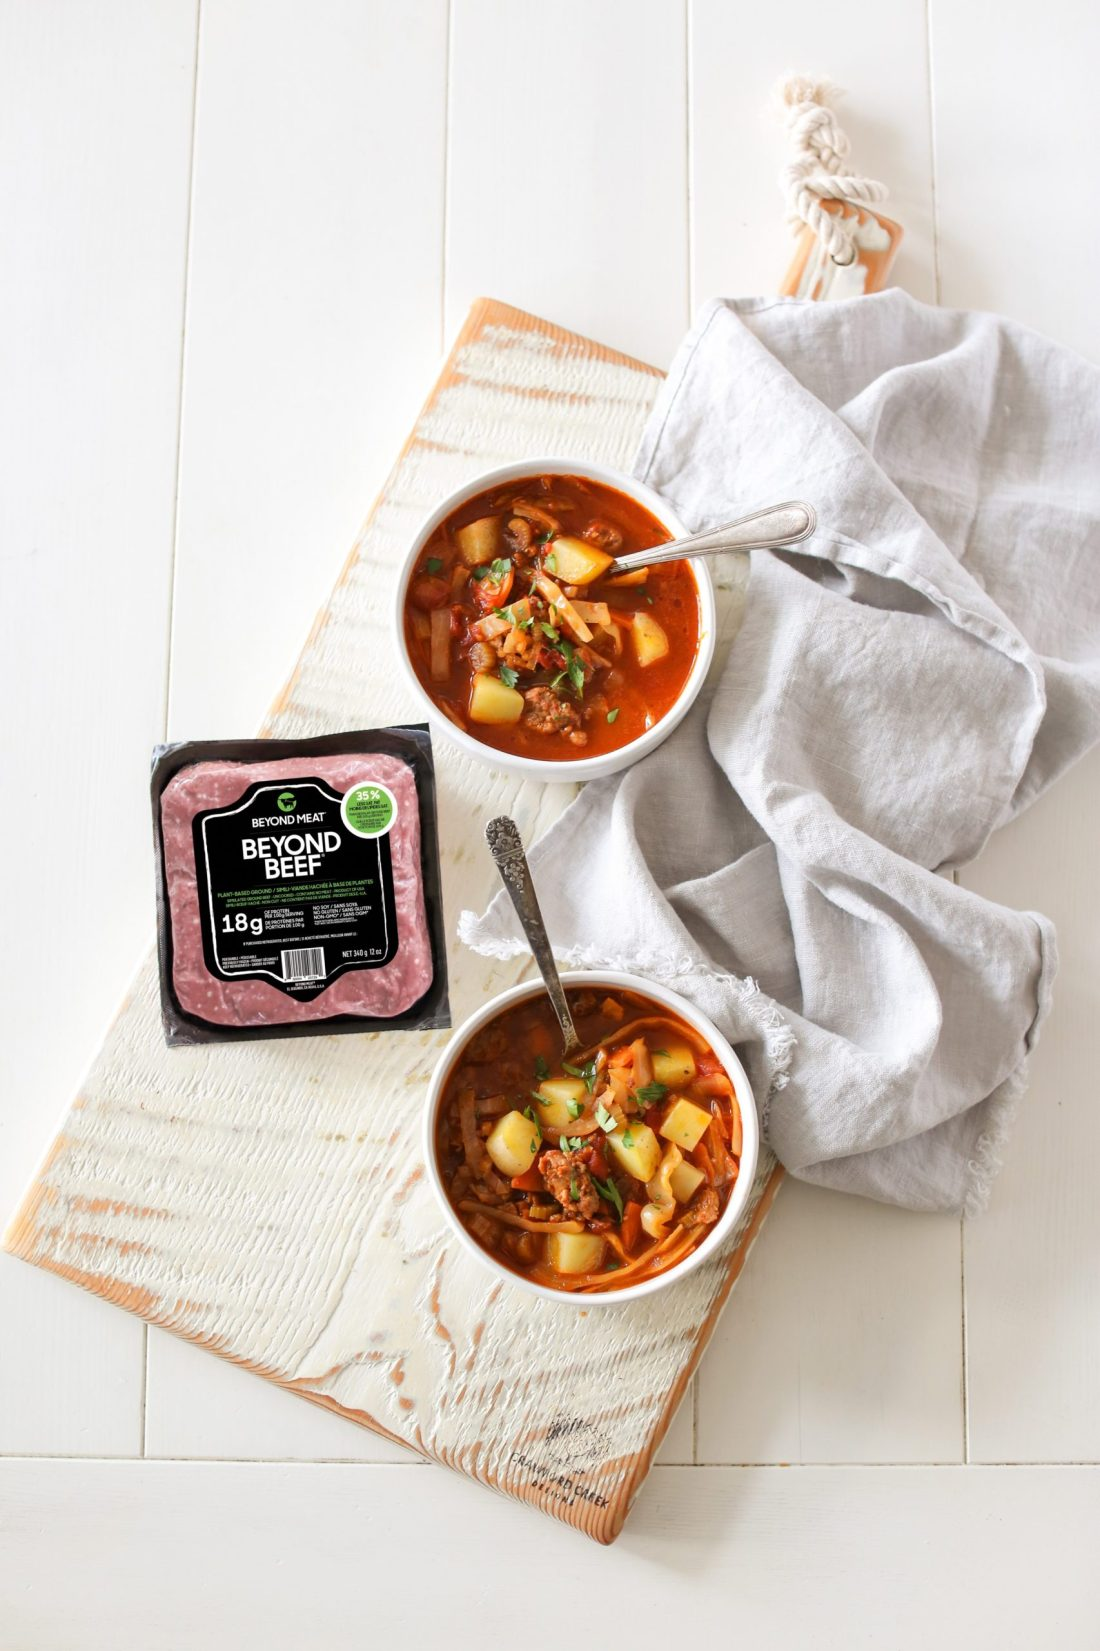 Plant Based Hamburger Soup Recipe using Beyond Beef that is totally vegan and loaded with healthy vegetables